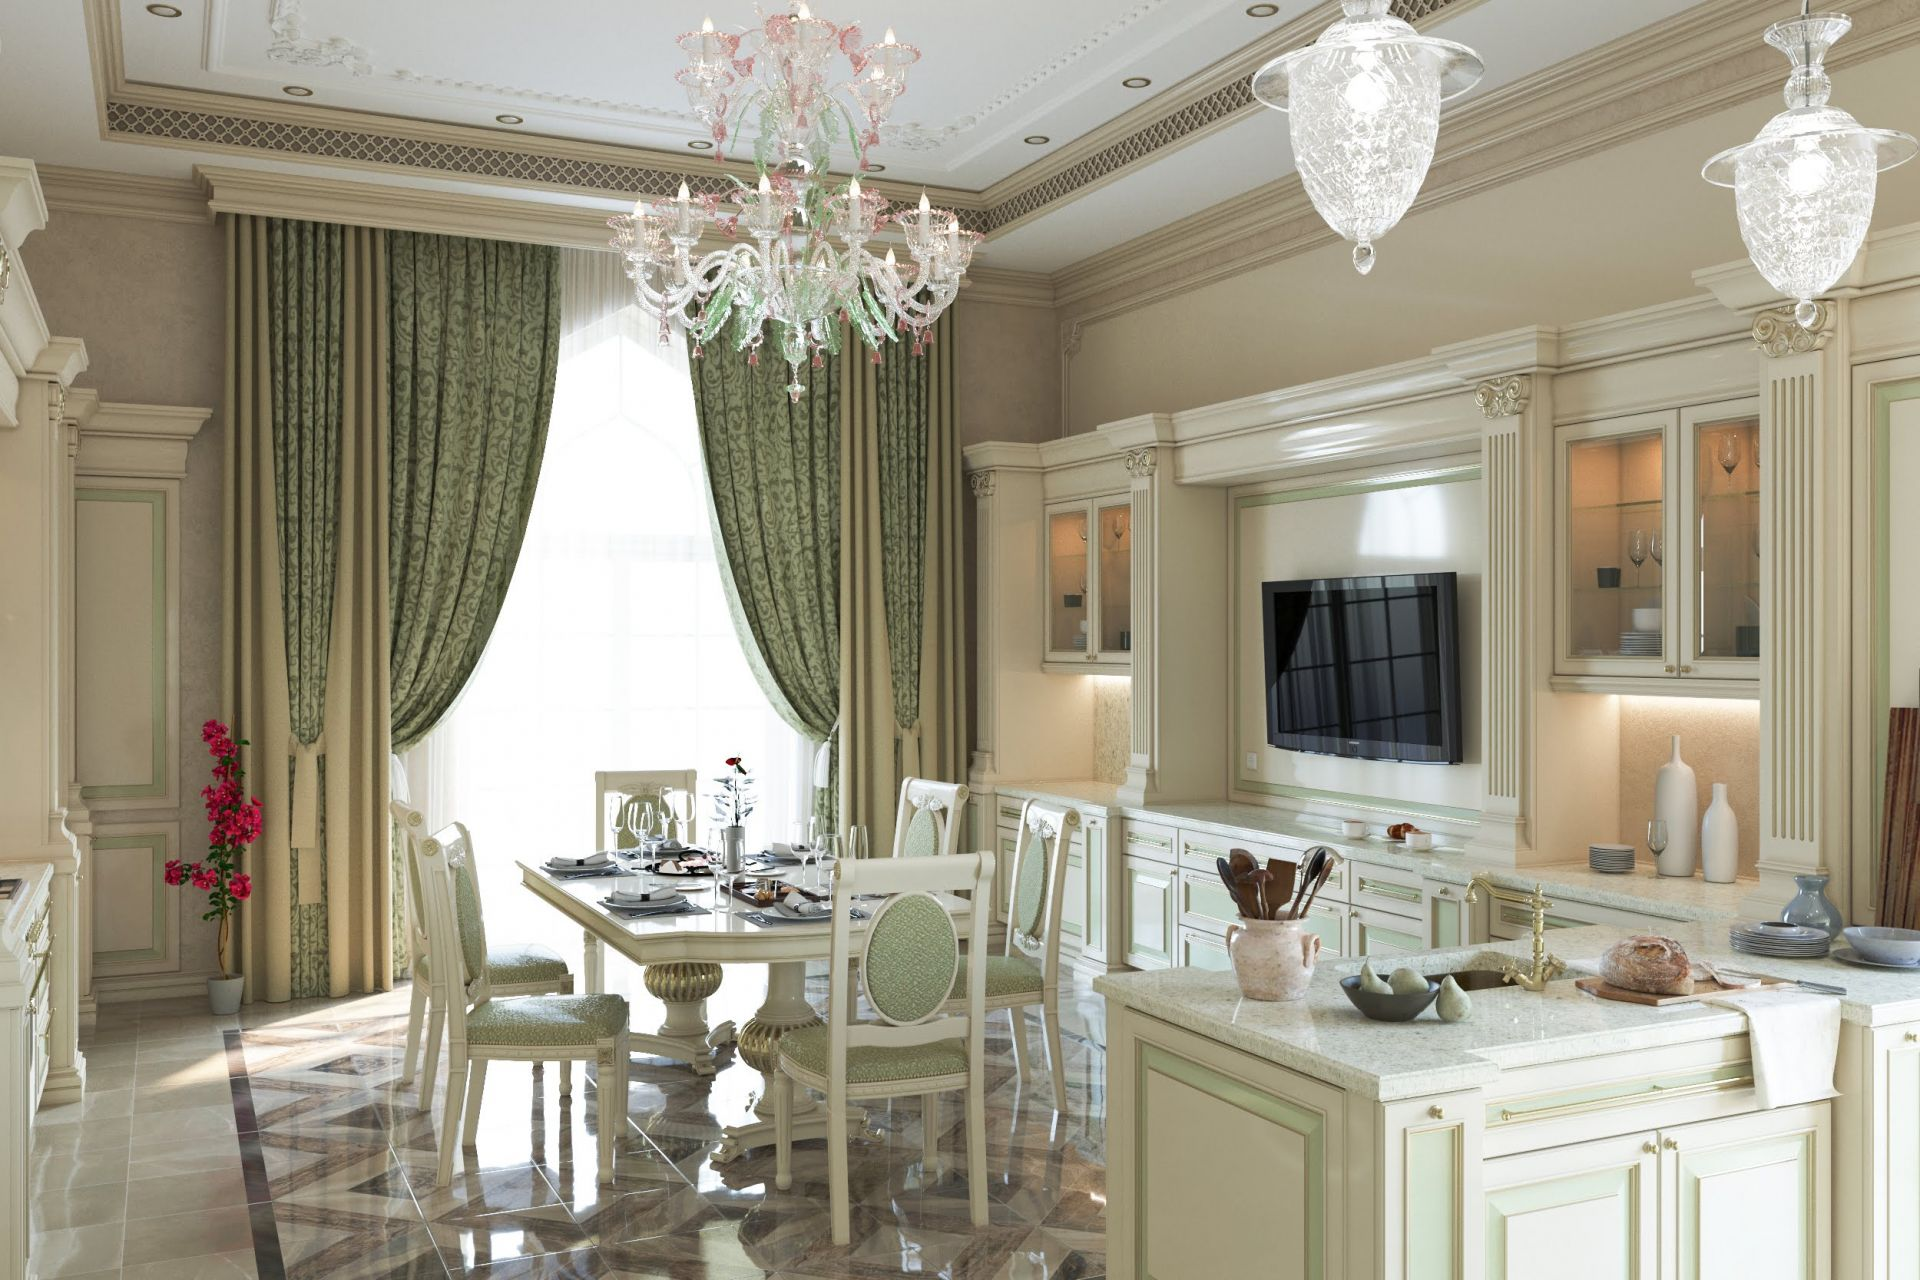 Kitchen-diner interior in classic style